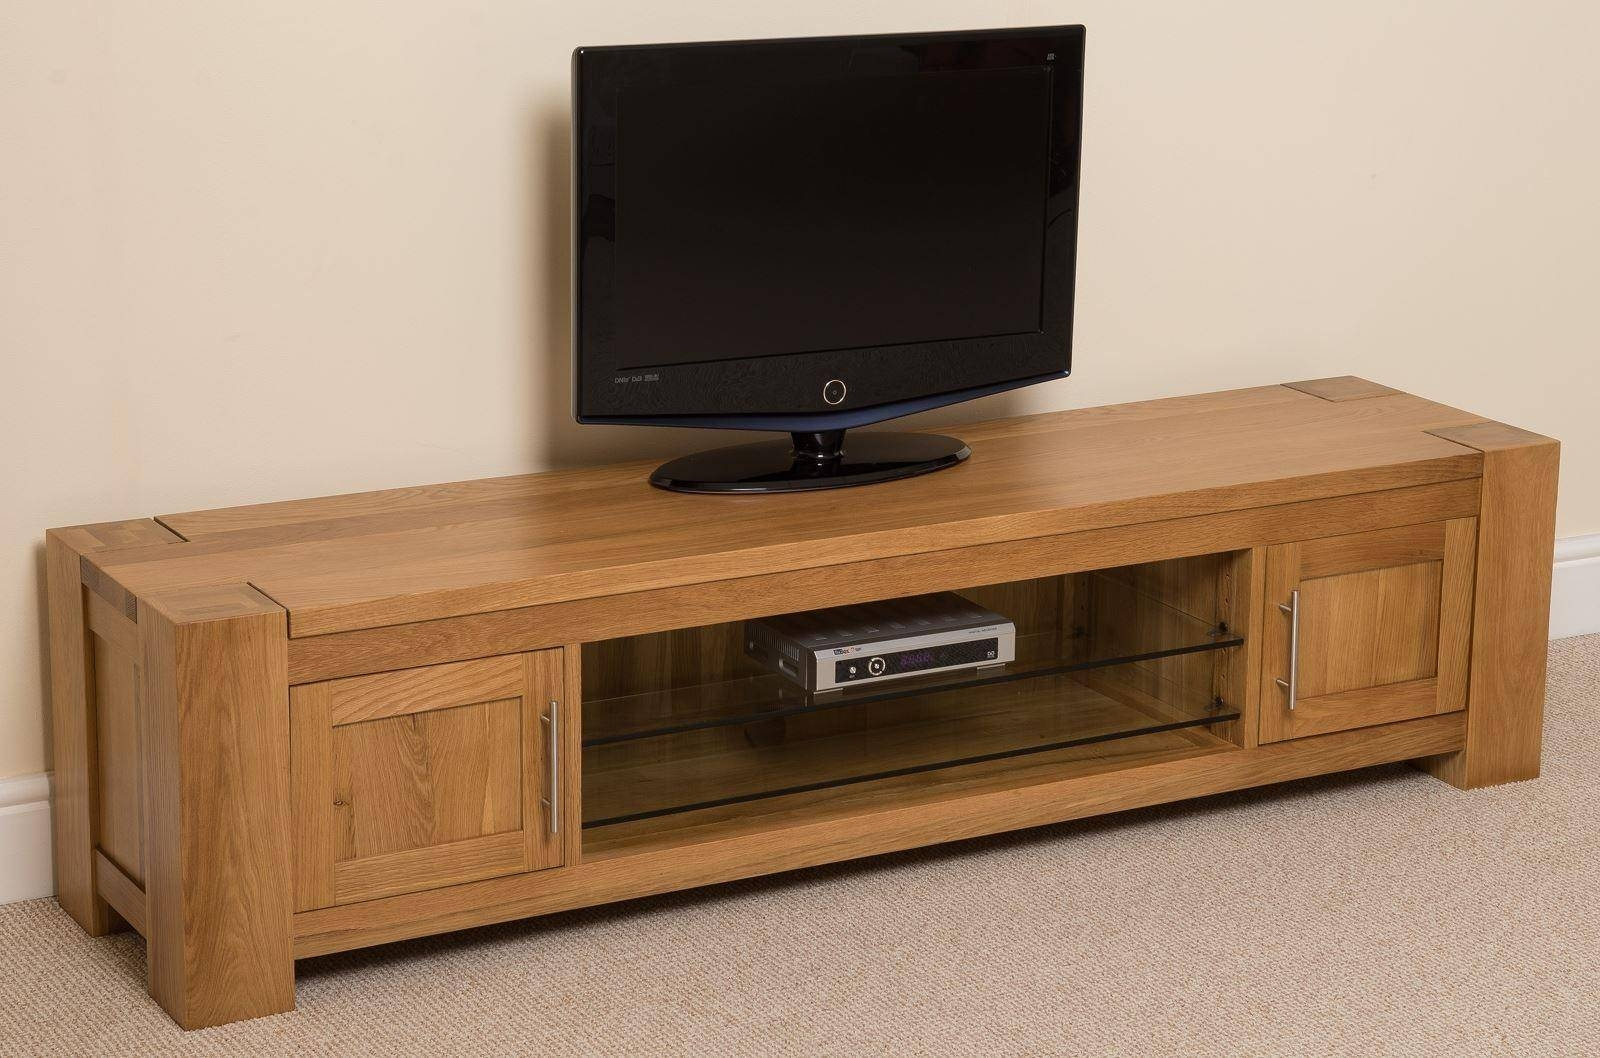 Kuba Solid Widescreen Tv Cabinet | Modern Furnitur Direct within Widescreen Tv Cabinets (Image 7 of 15)